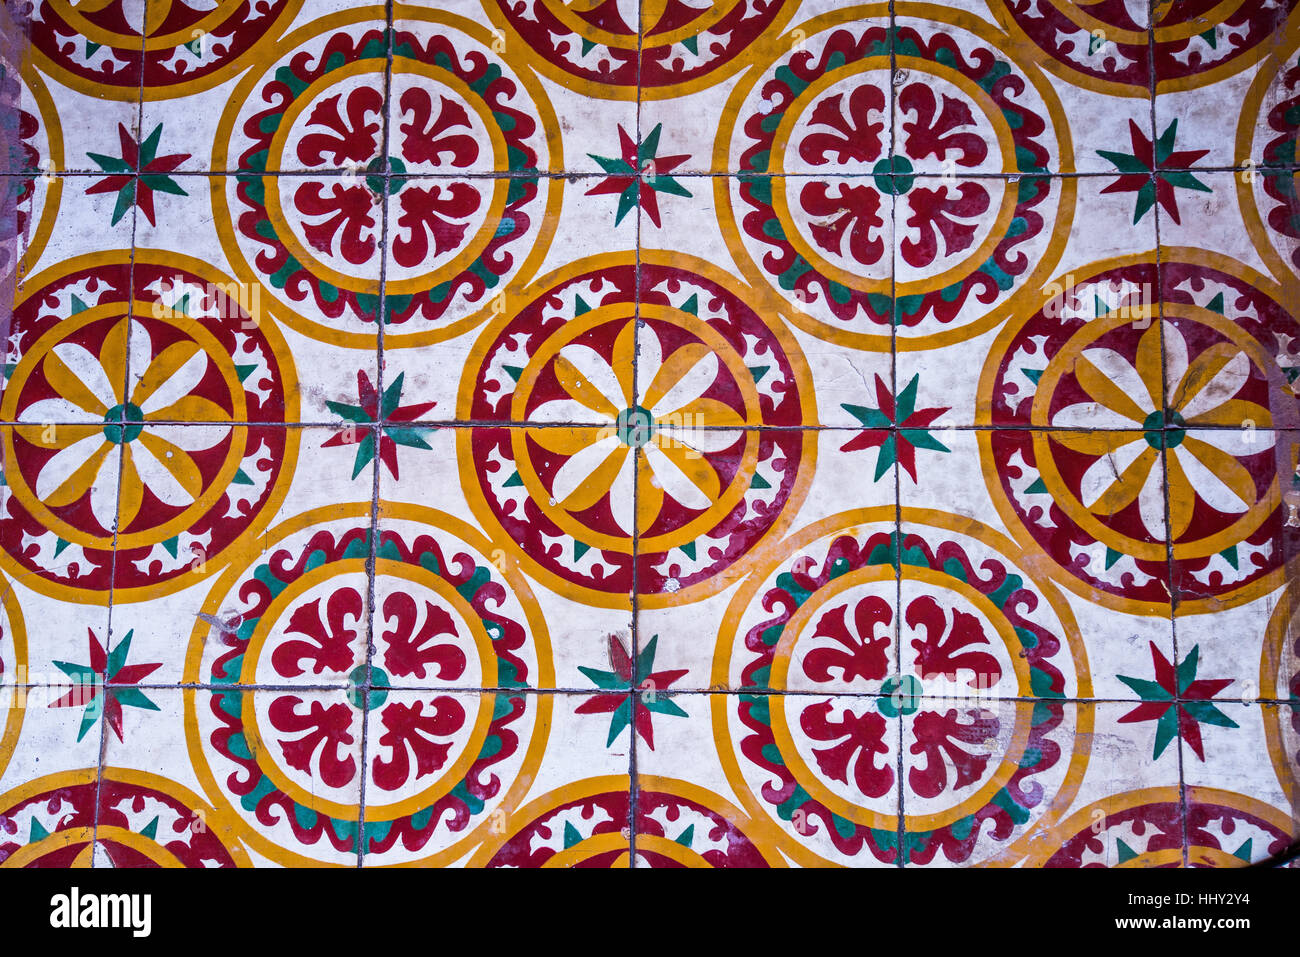 Colorful Vintage Style Floor Tile Pattern Texture And Background